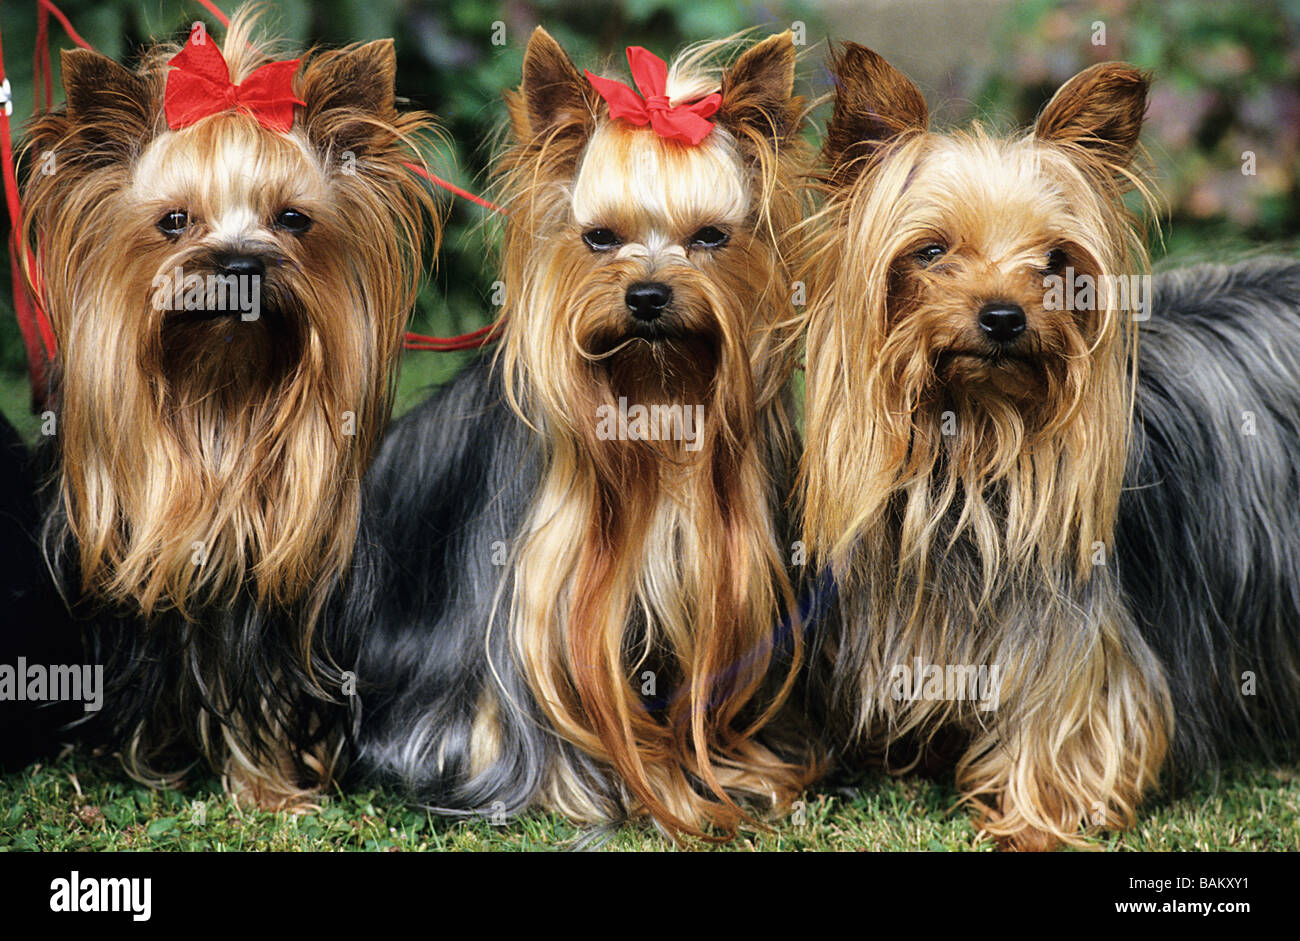 United Kingdom, Yorkshire, Yorkshire Terriers - Stock Image